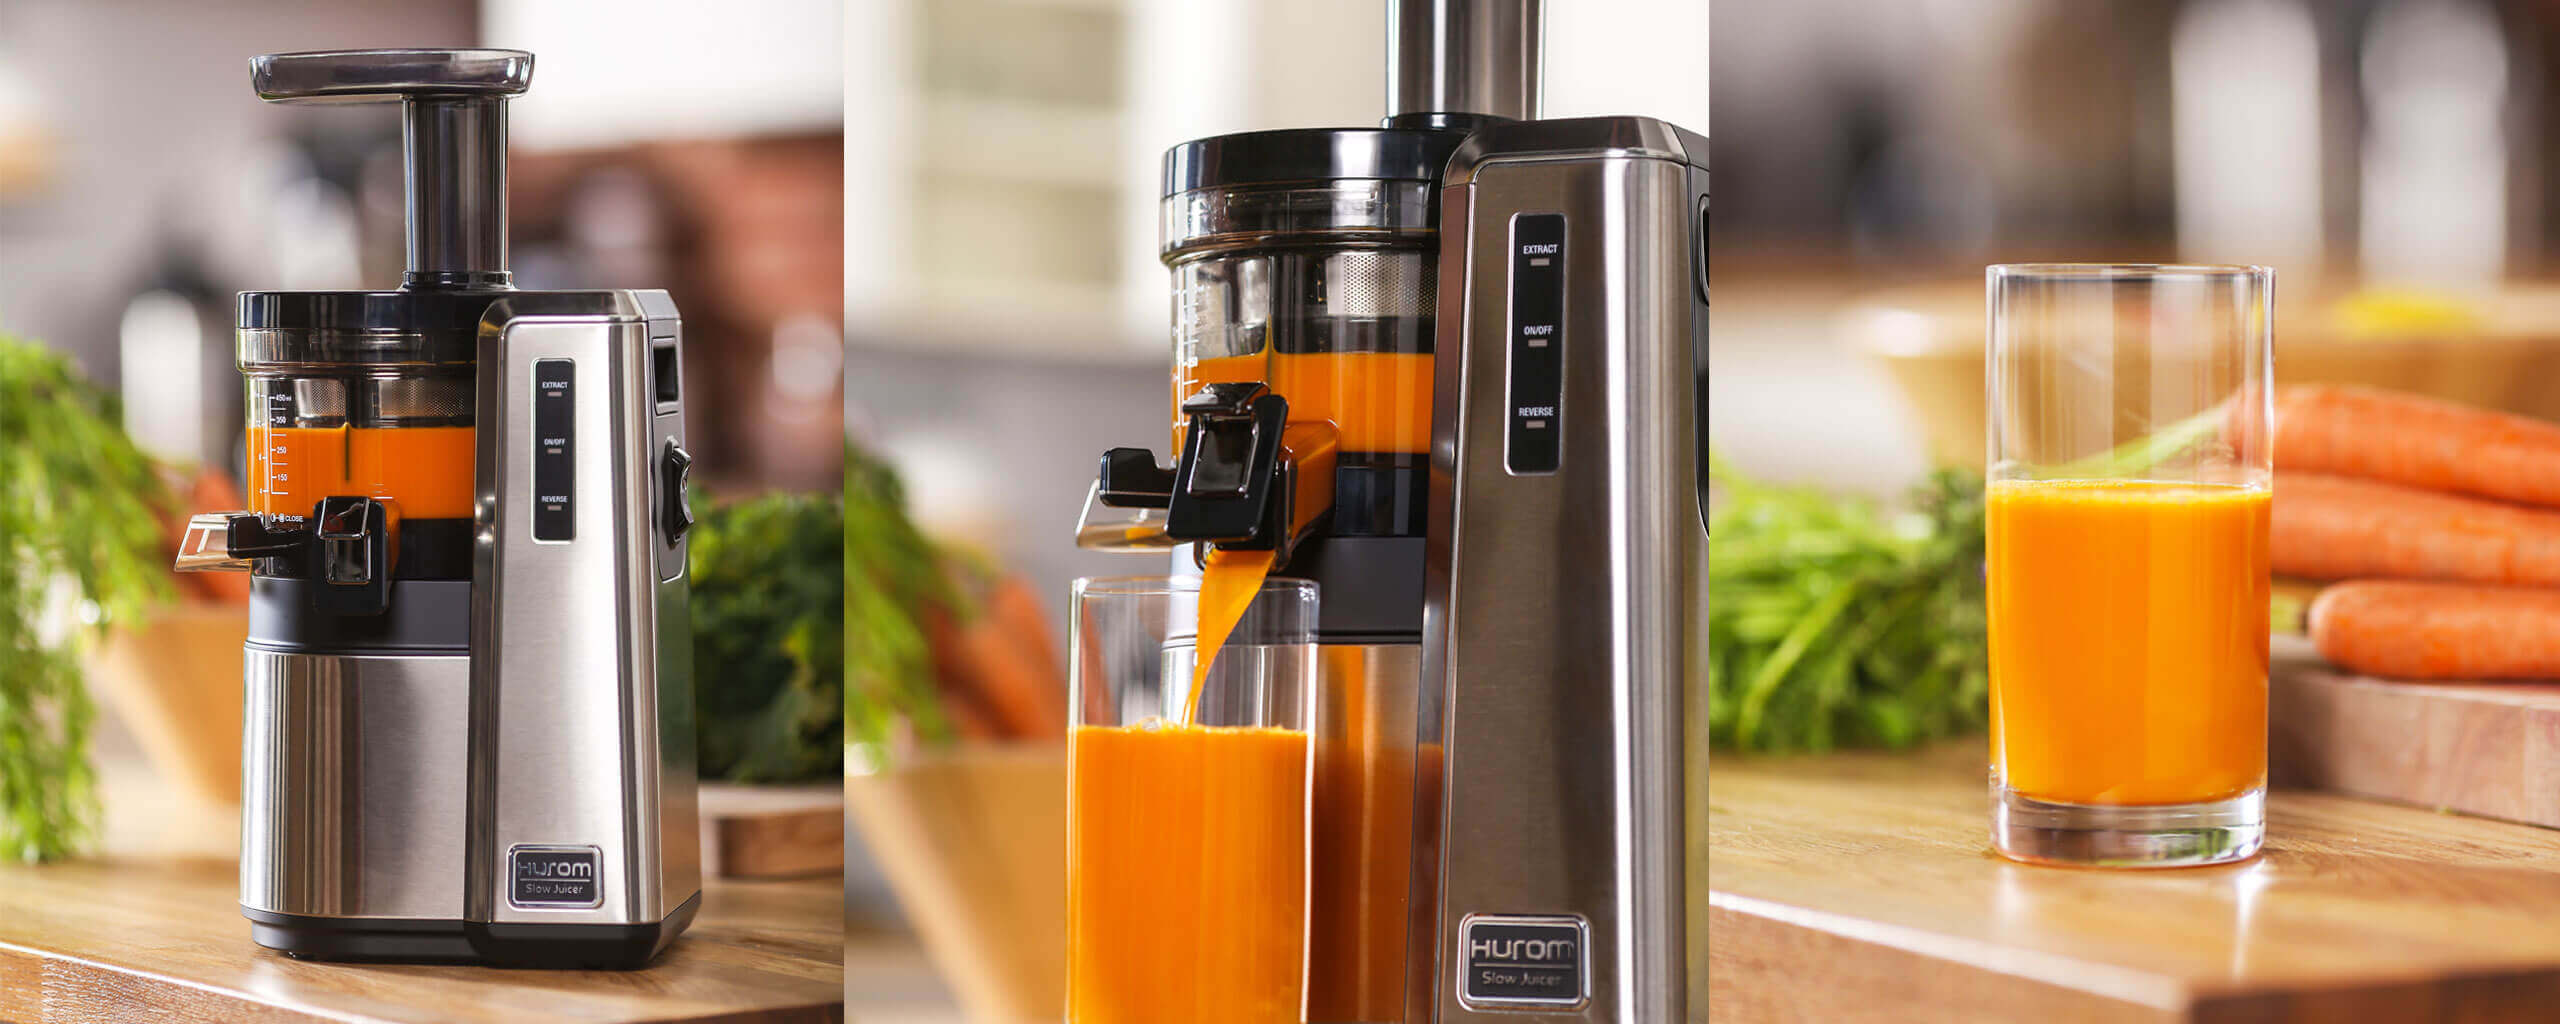 Hurom Hz Slow Juicer Reviews : HZ Slow Juicer Hurom